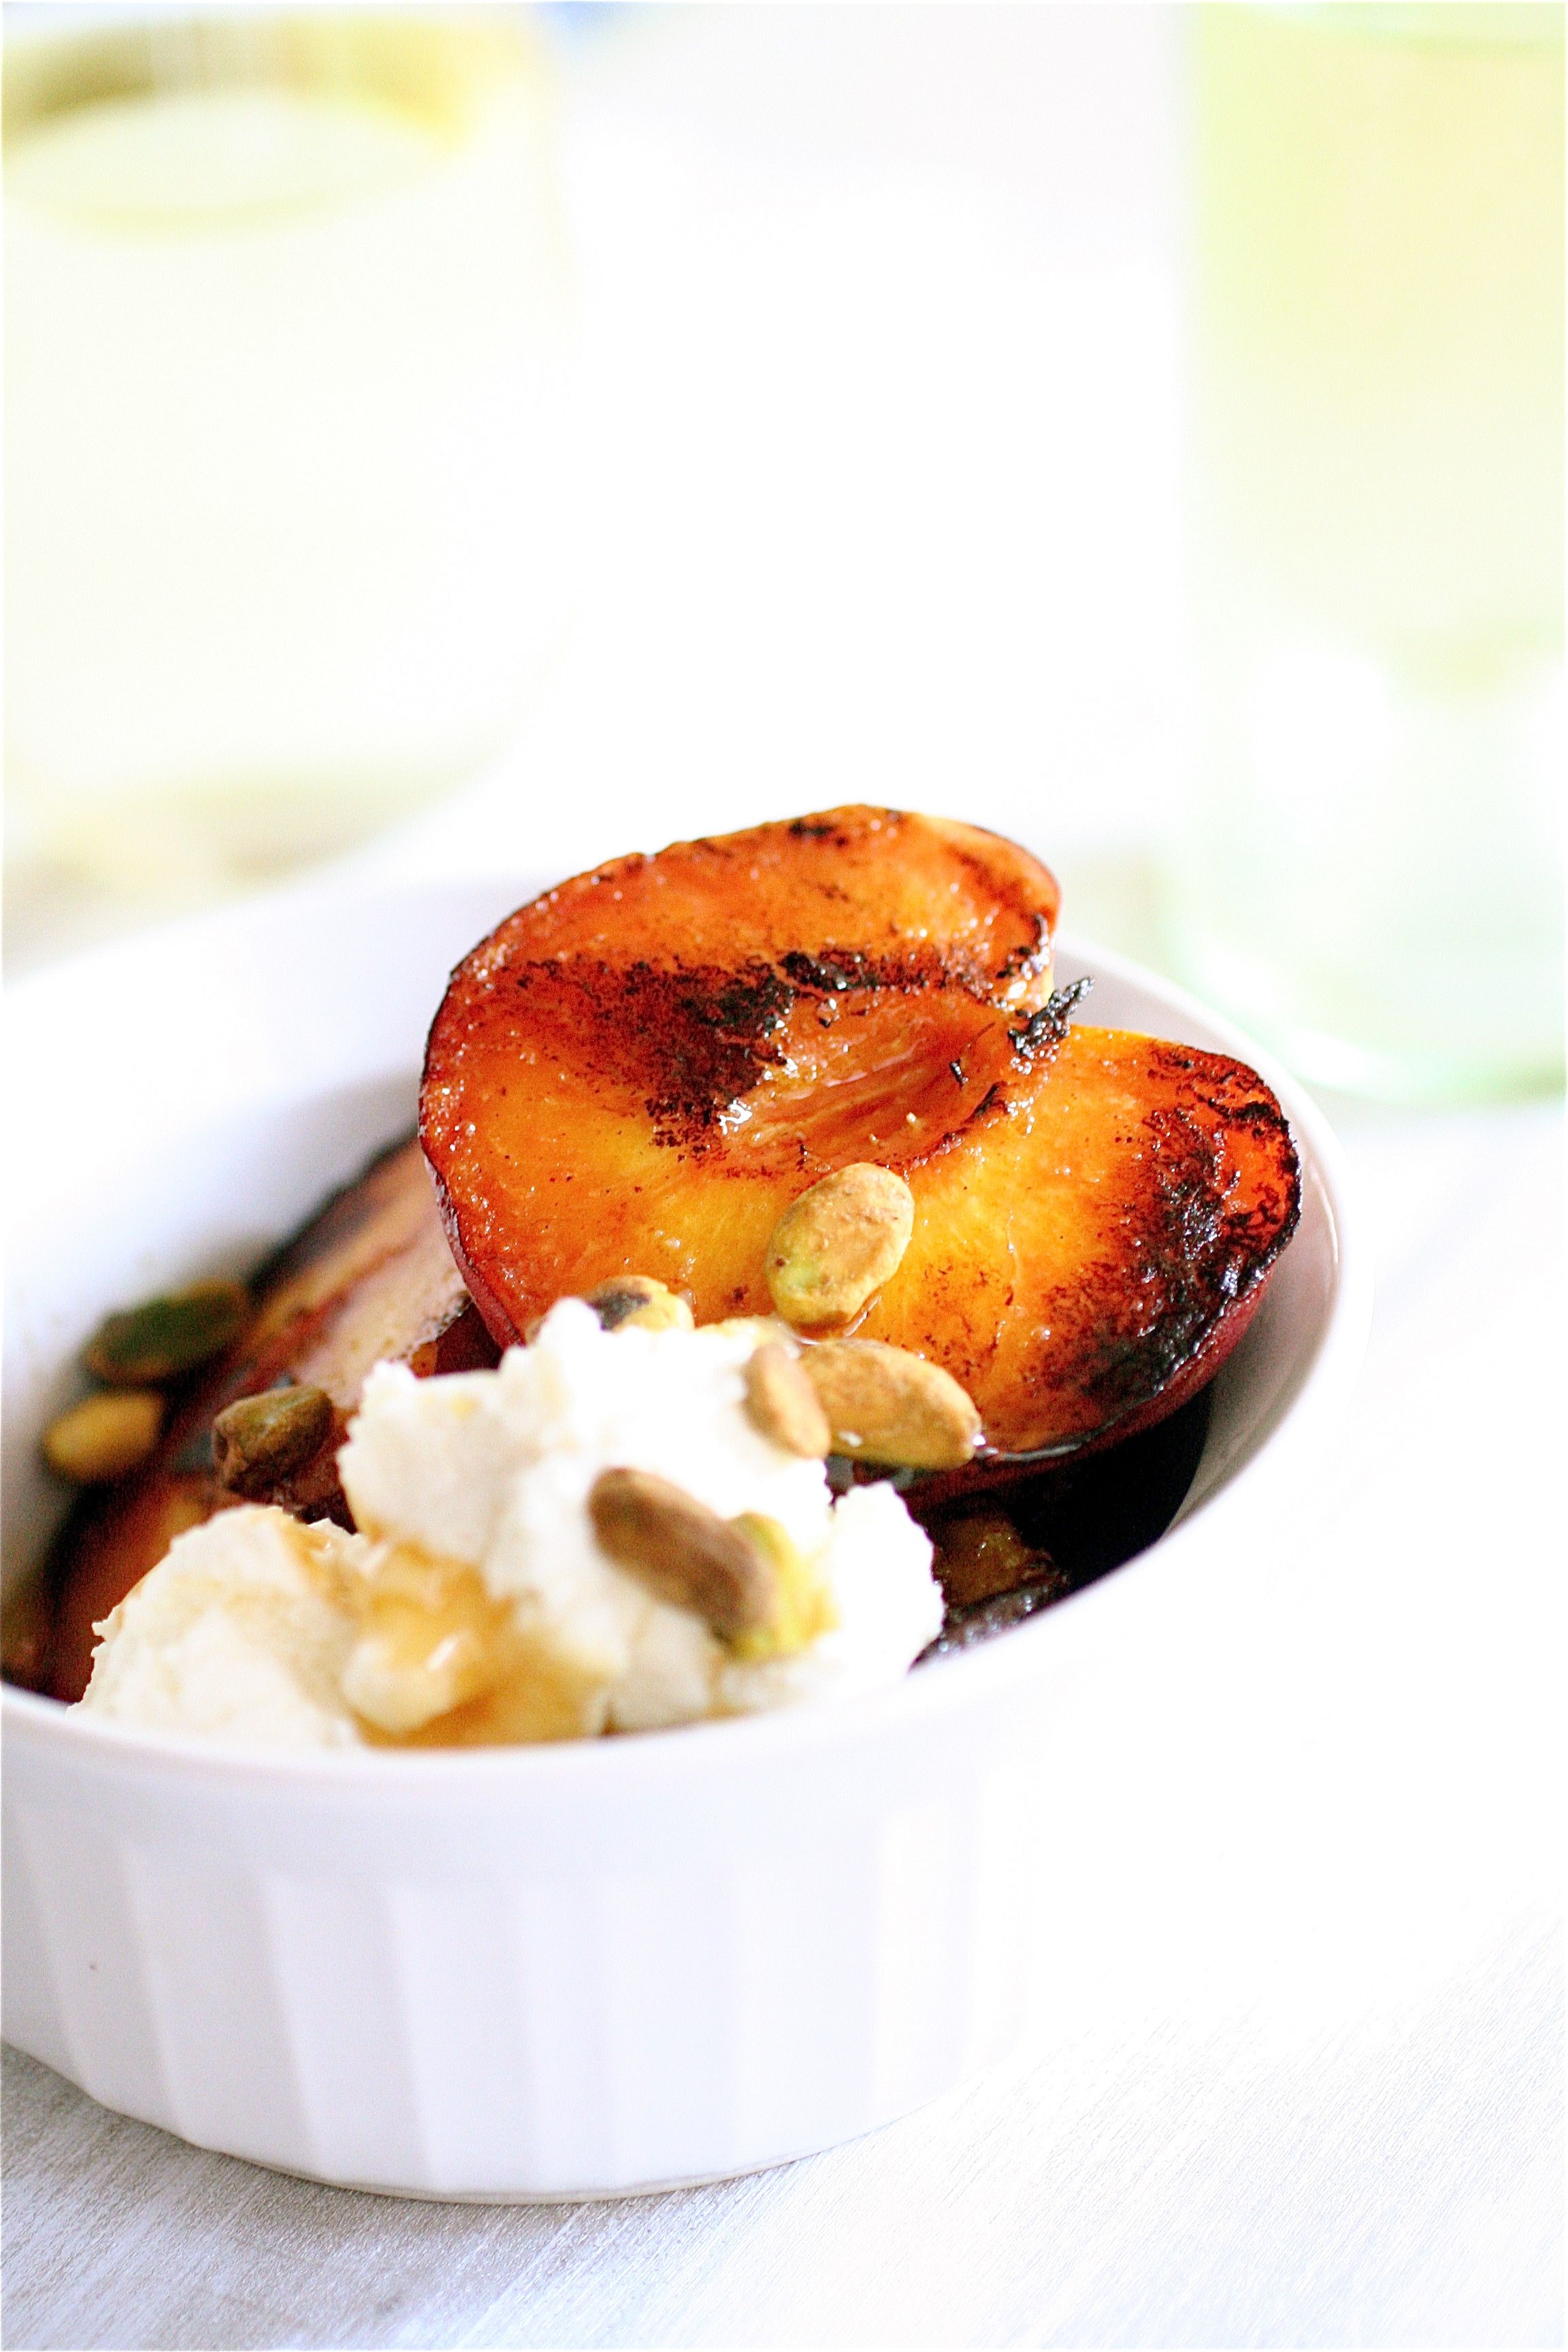 Grilled Peaches with Ricotta & Pistachios